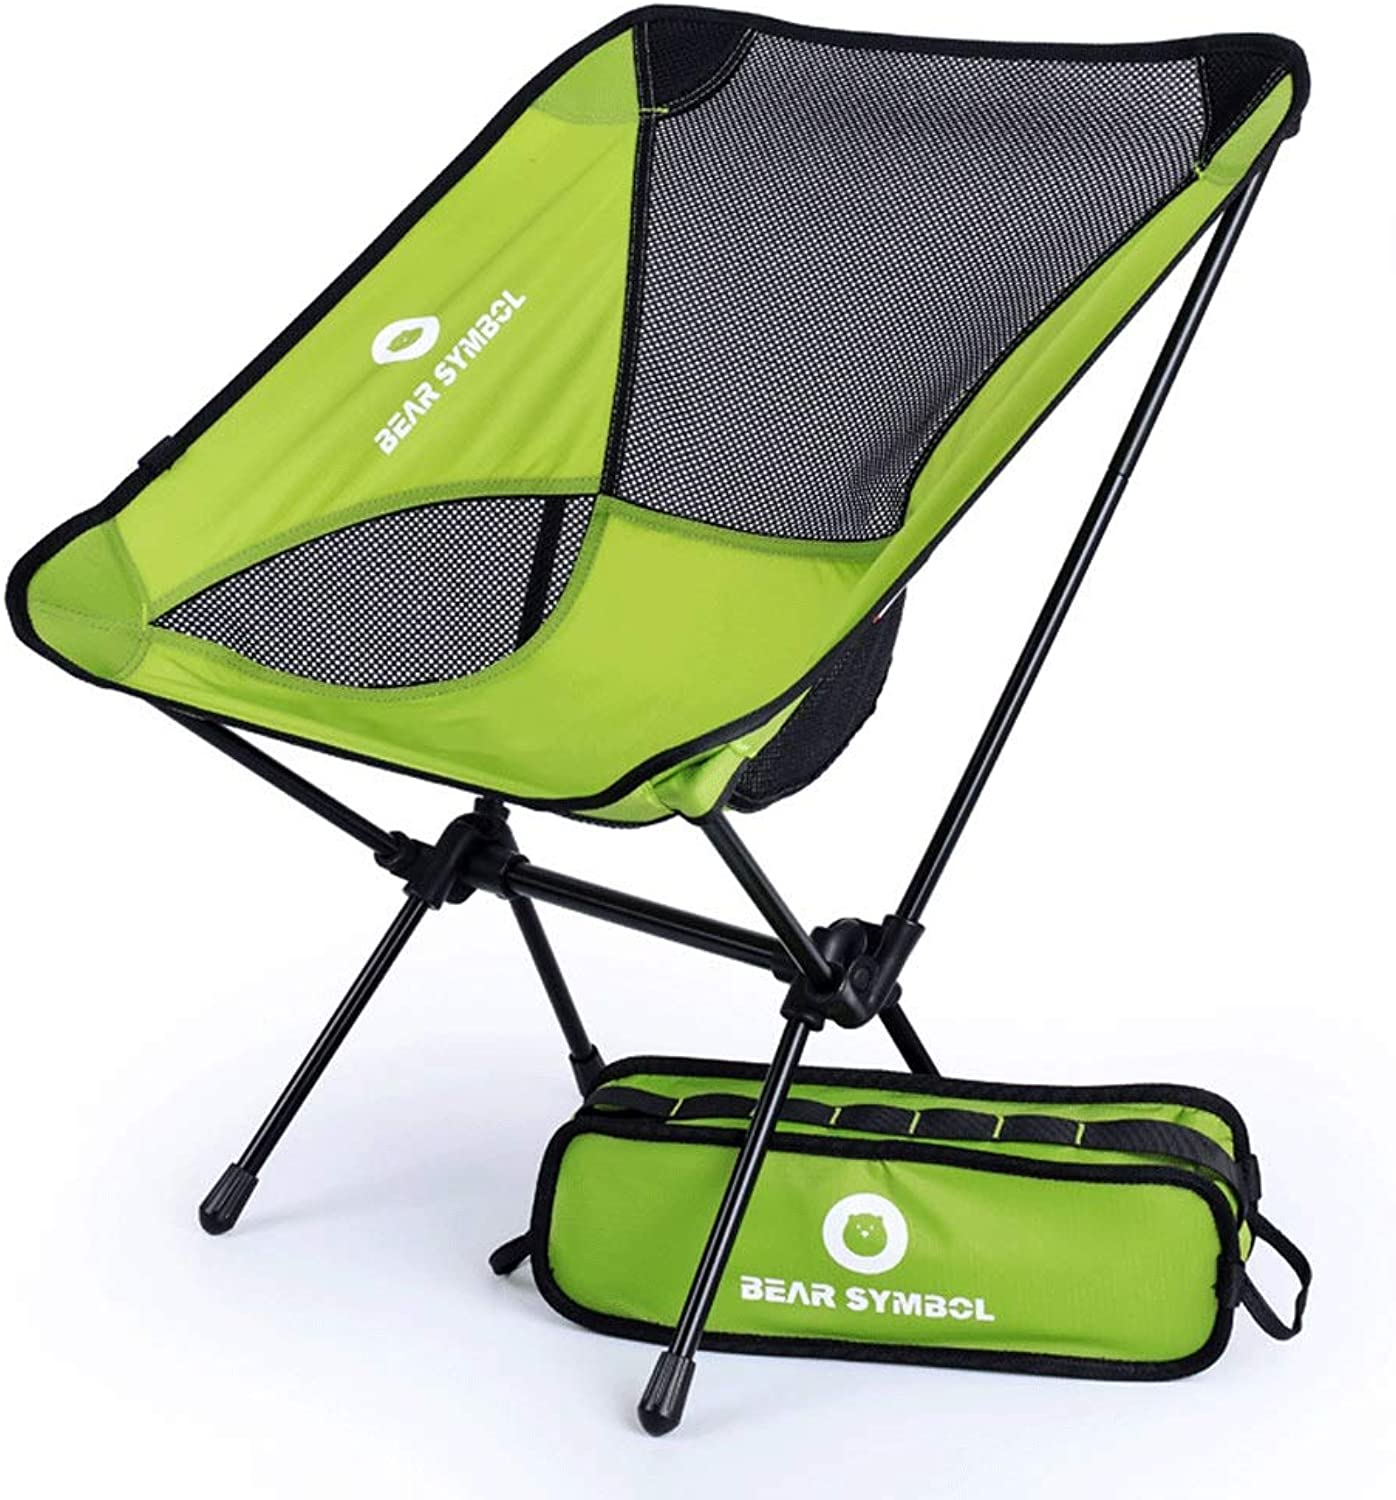 Folding Chair Camping Chair with Mesh Cup Holder Handrail Steel Frame Hanging Bag Portable Camping Picnic Beach Fishing (color   Green)